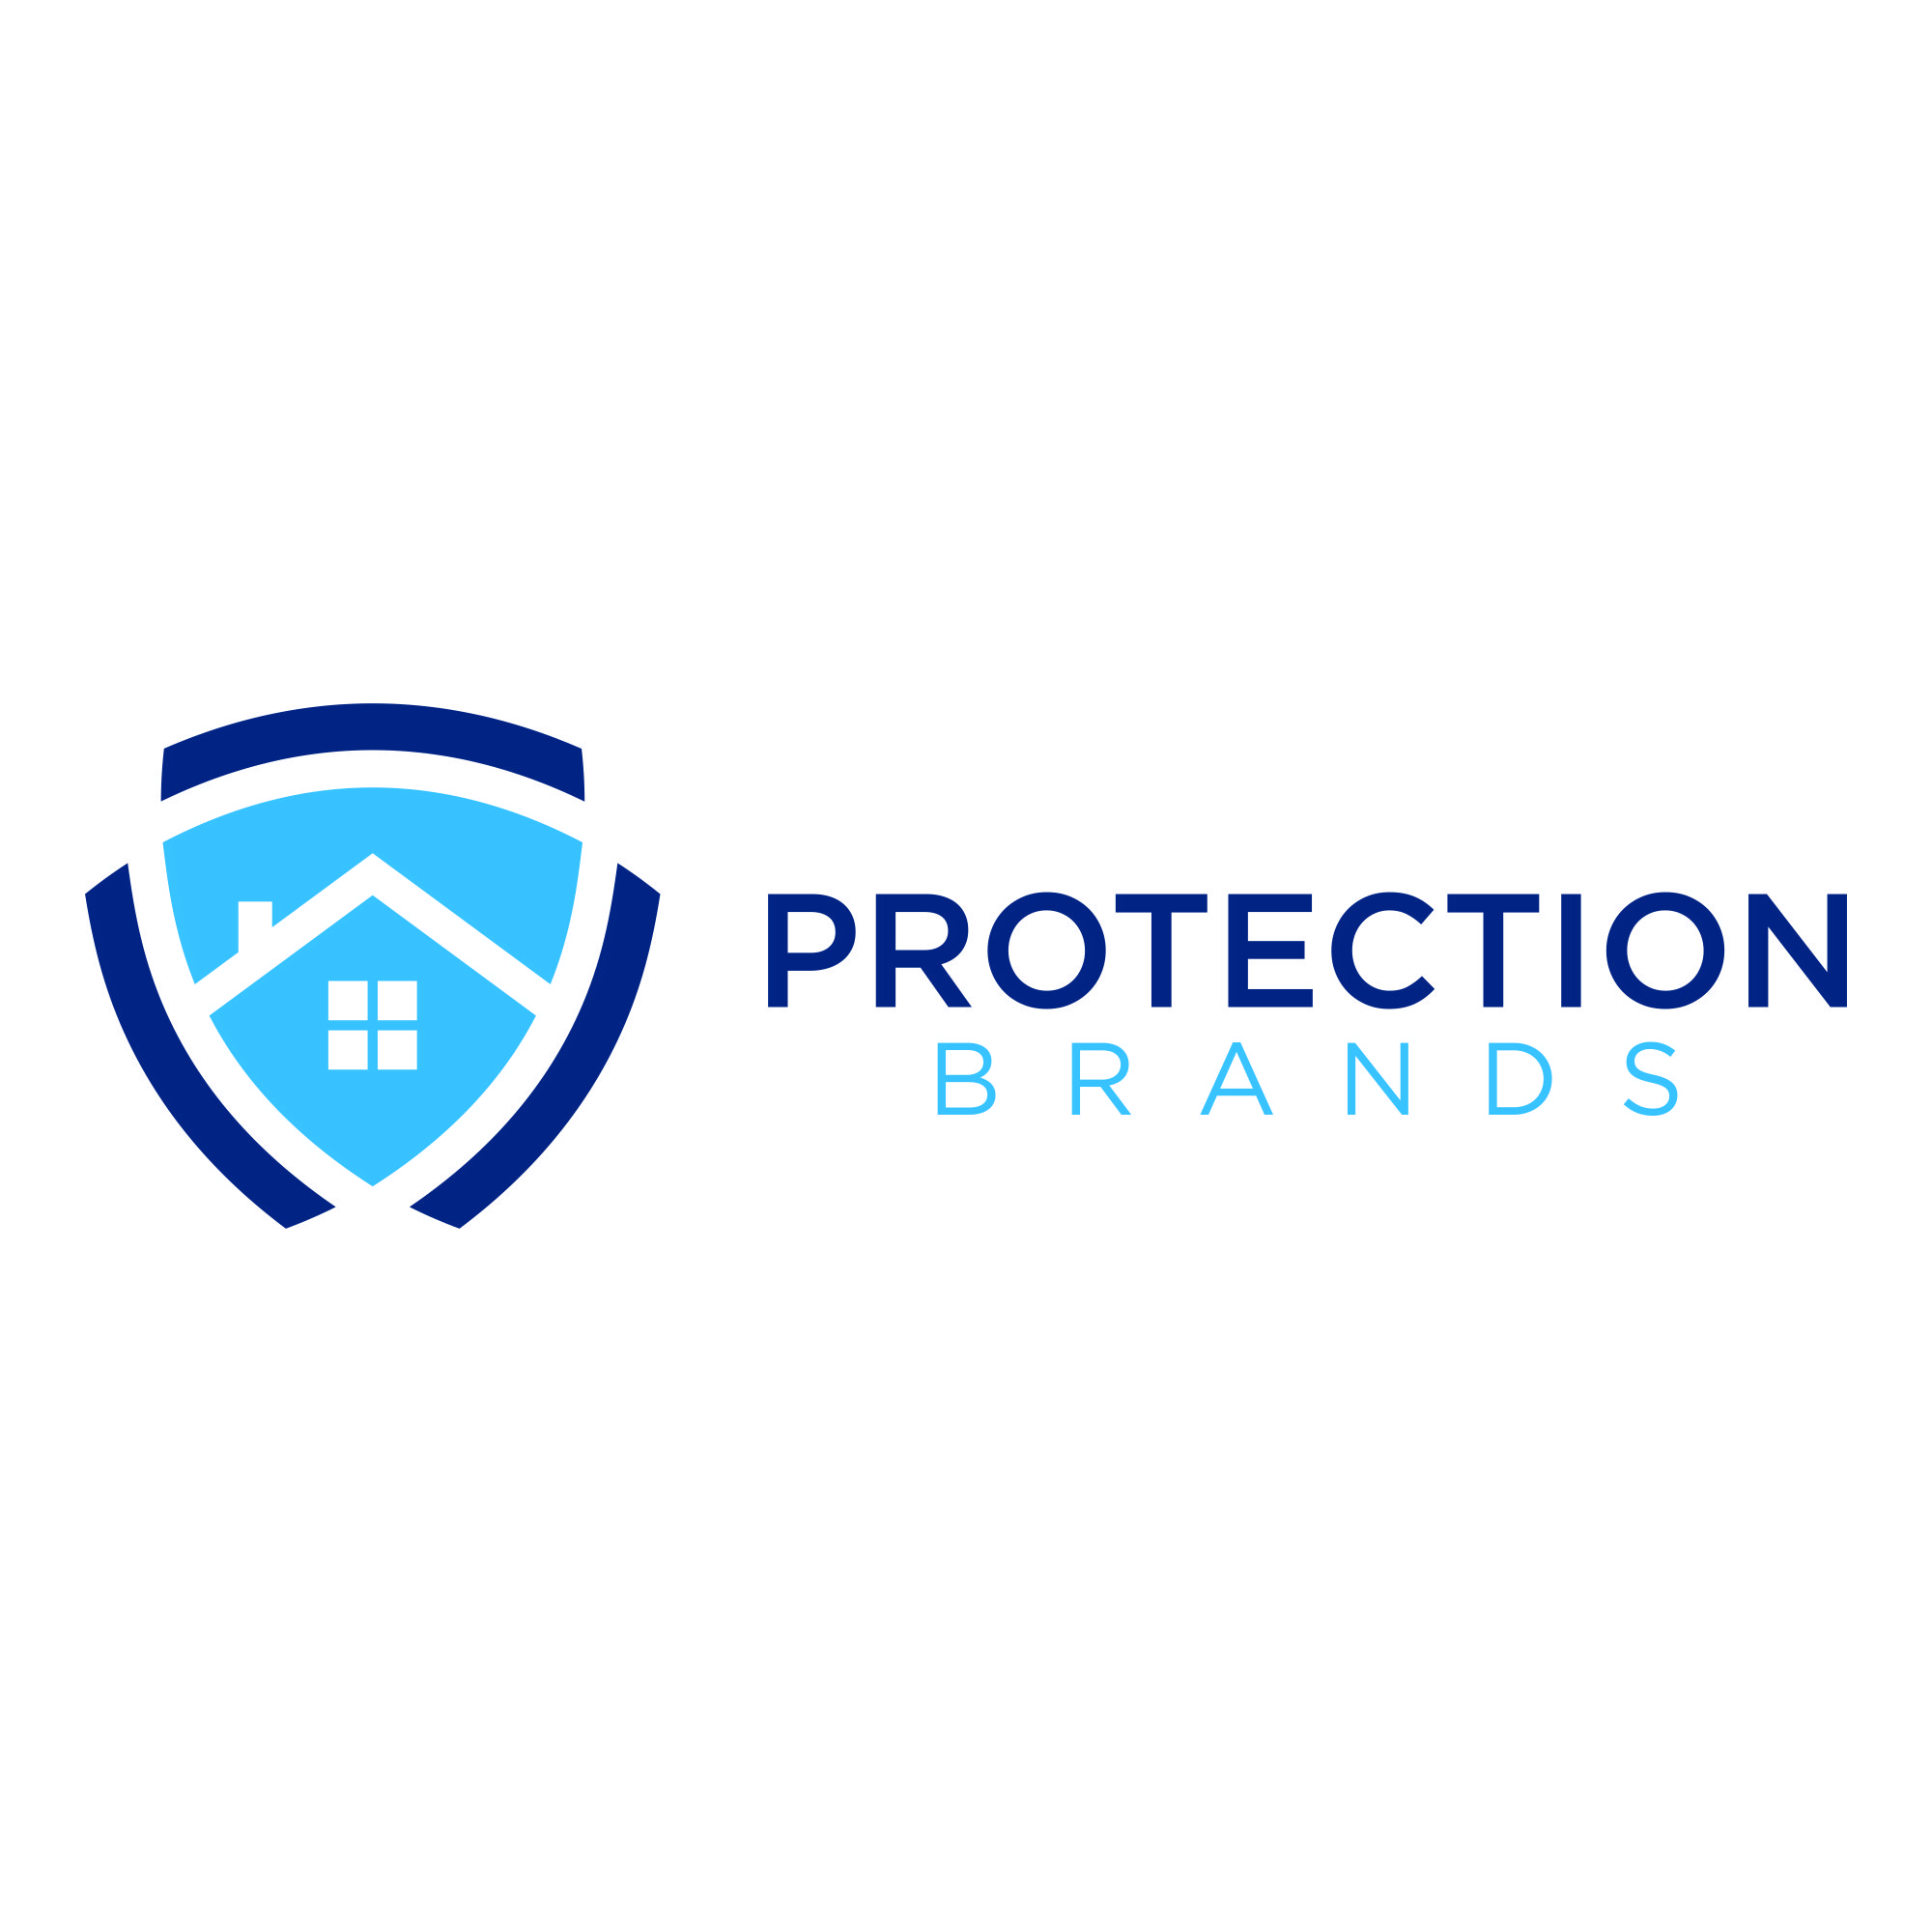 Protection Brands